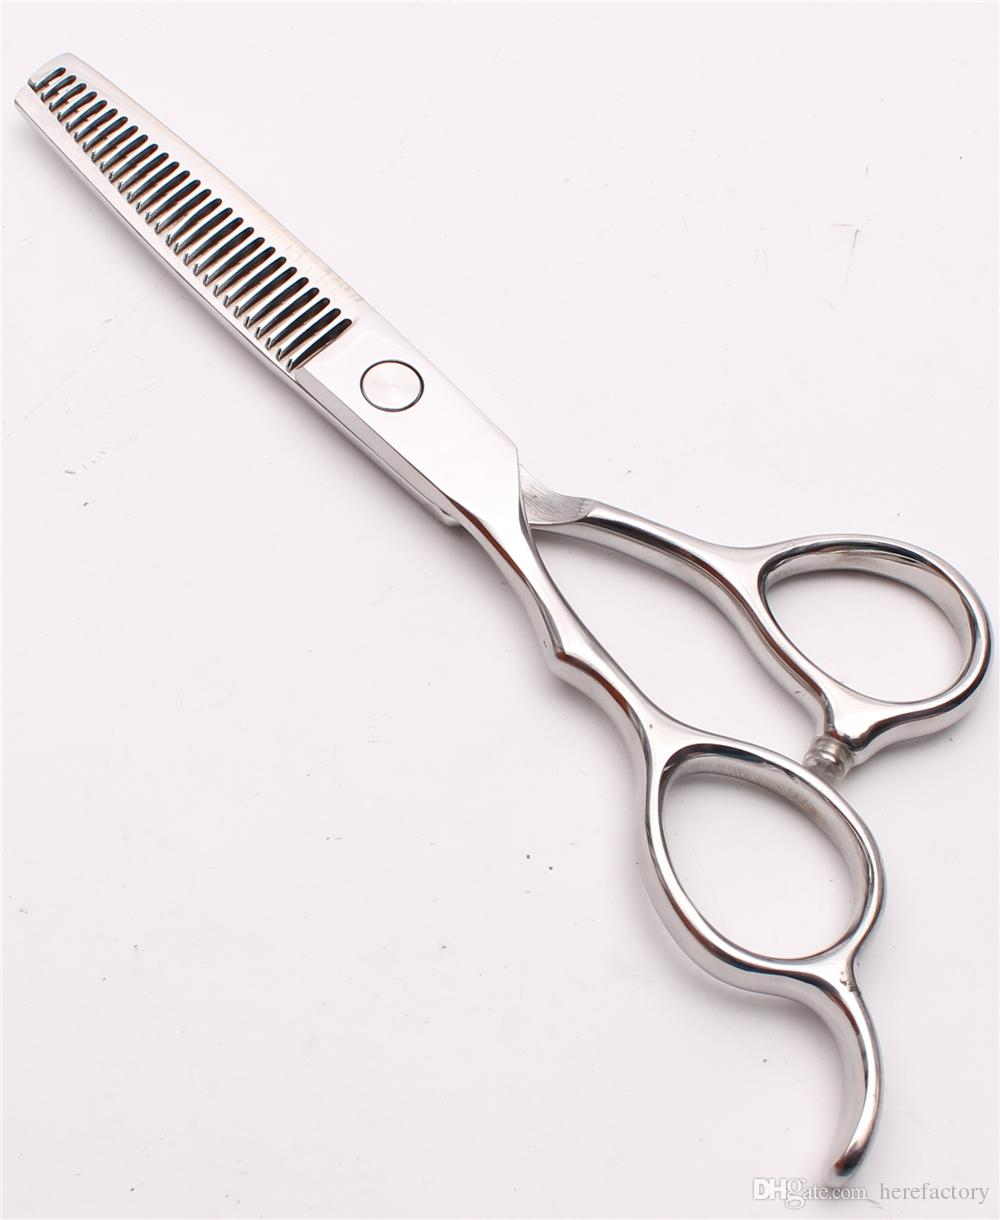 "C8000 6"" Japan 440C Customized Logo Silver Professional Human Hair Scissors Barbers' Cutting Thinning Shears Left Hand Scissors Style Tools"